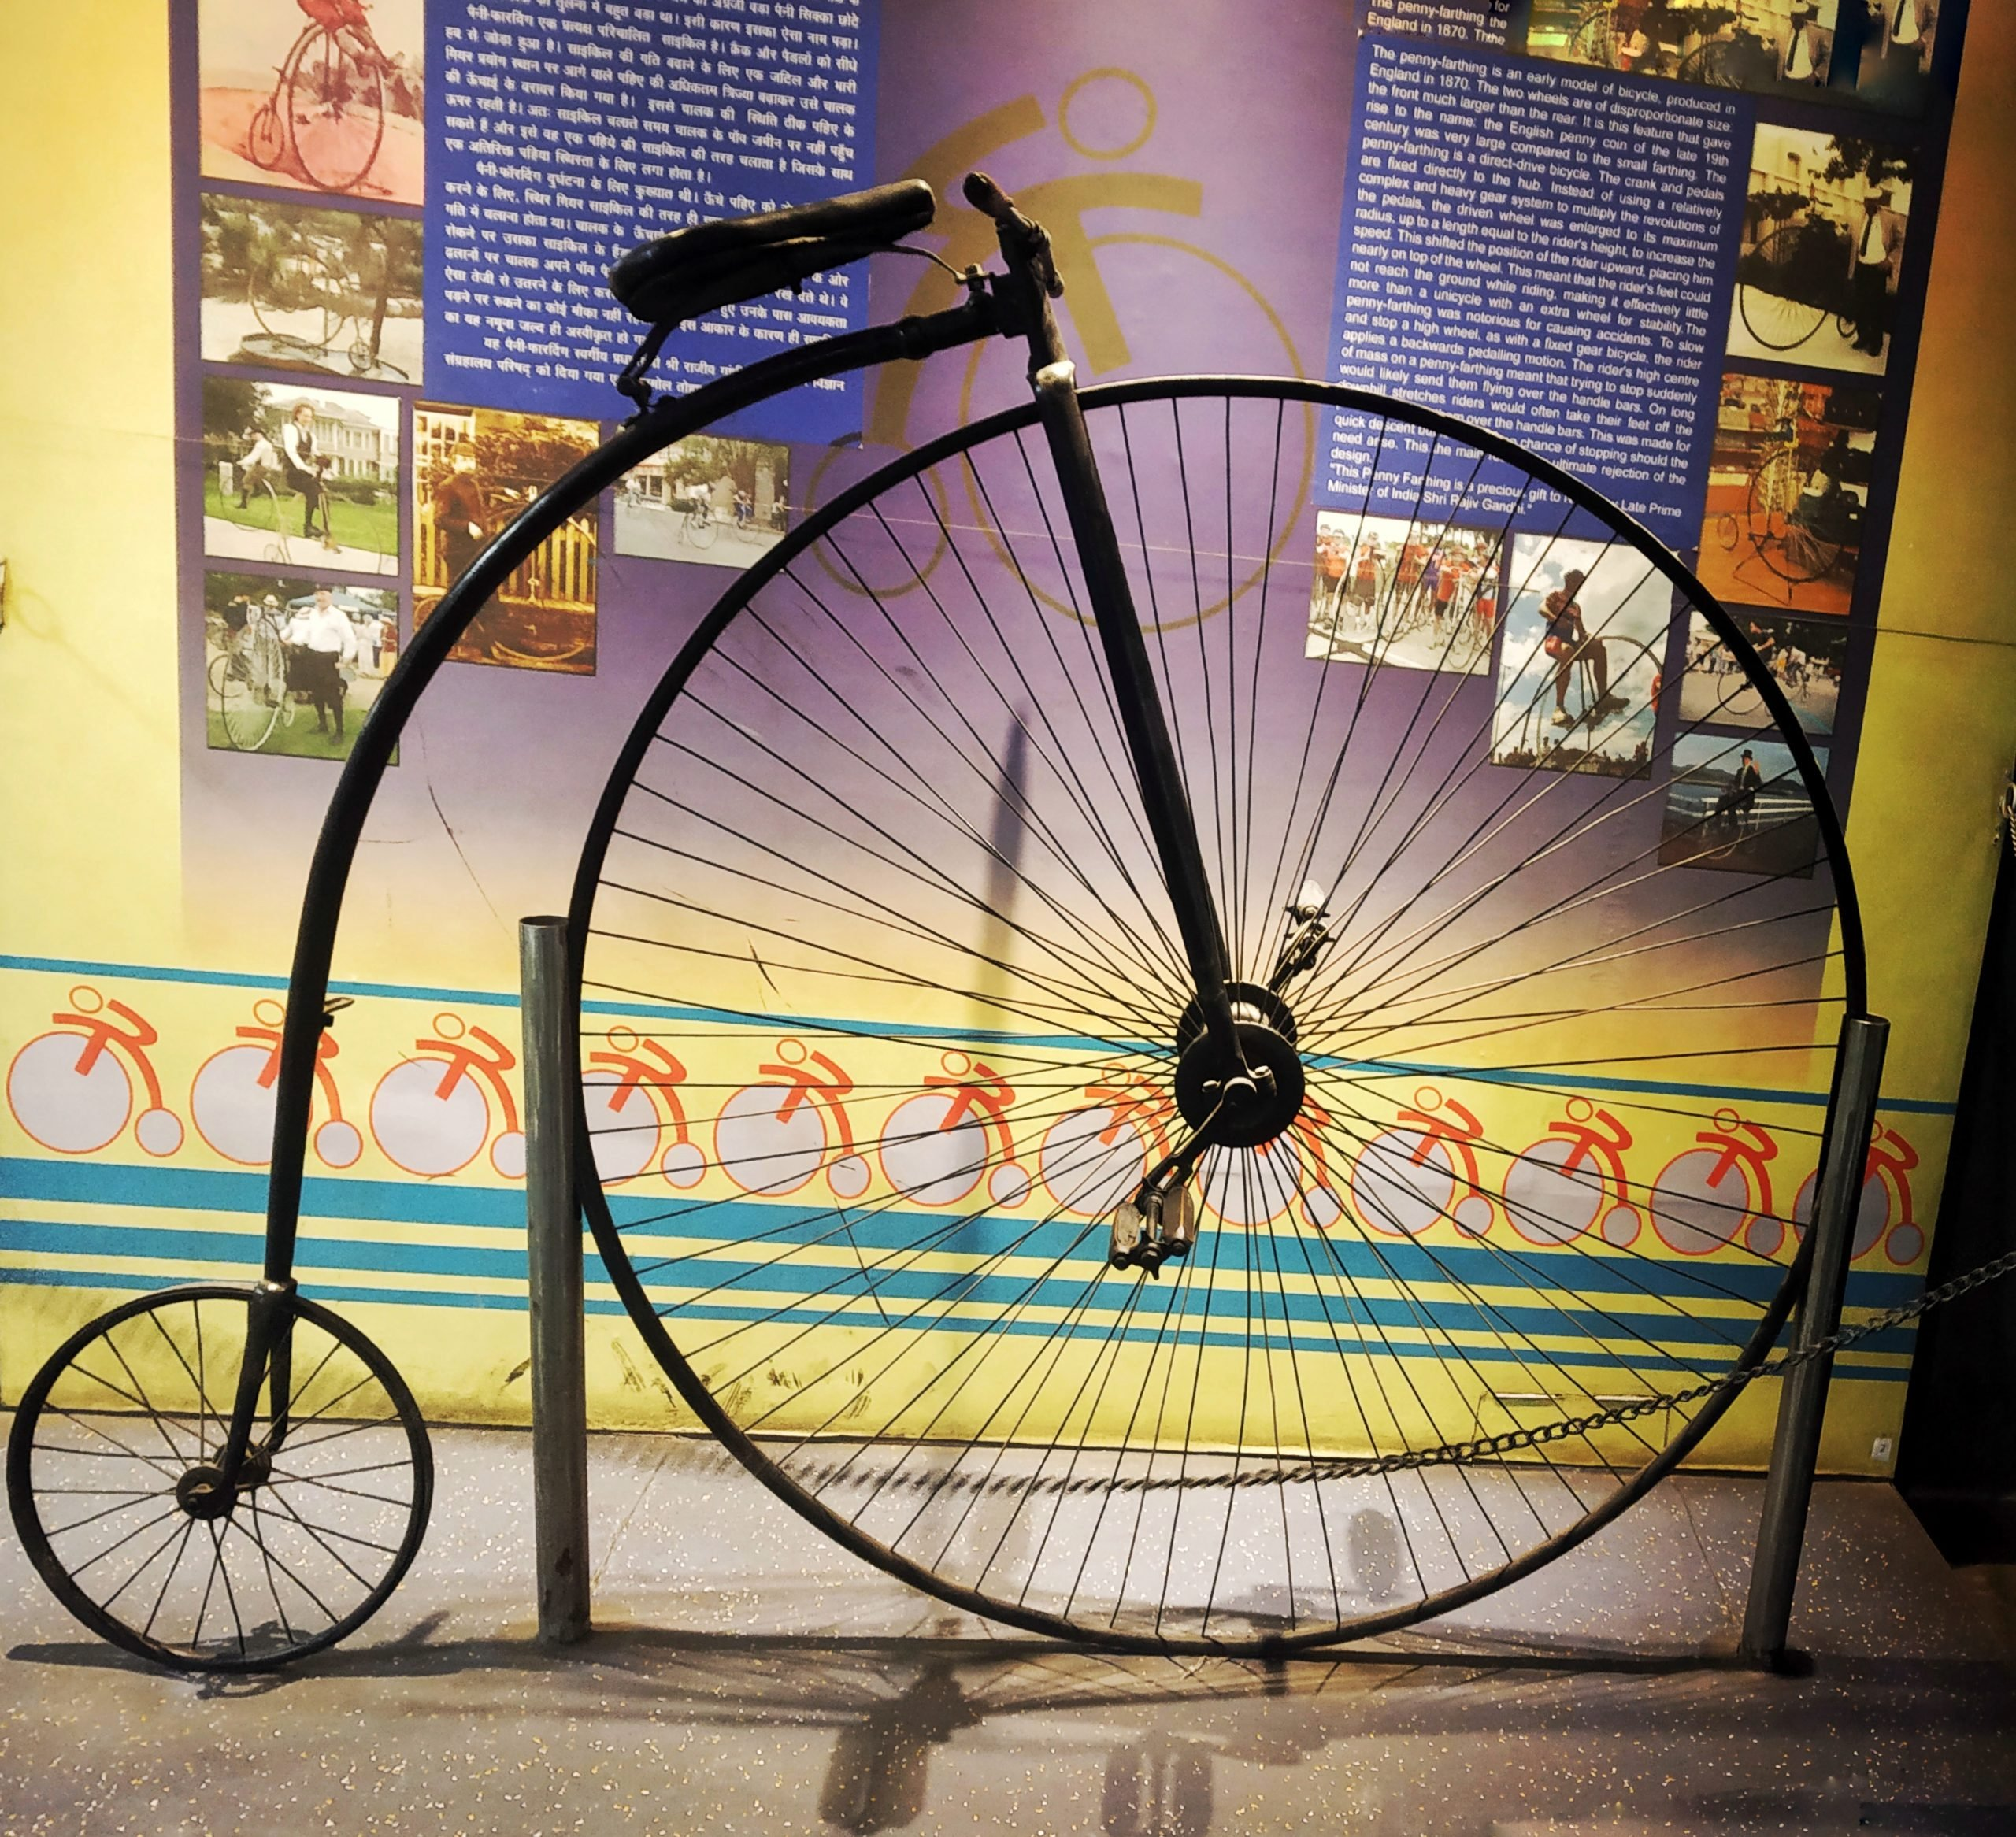 A showpiece bicycle